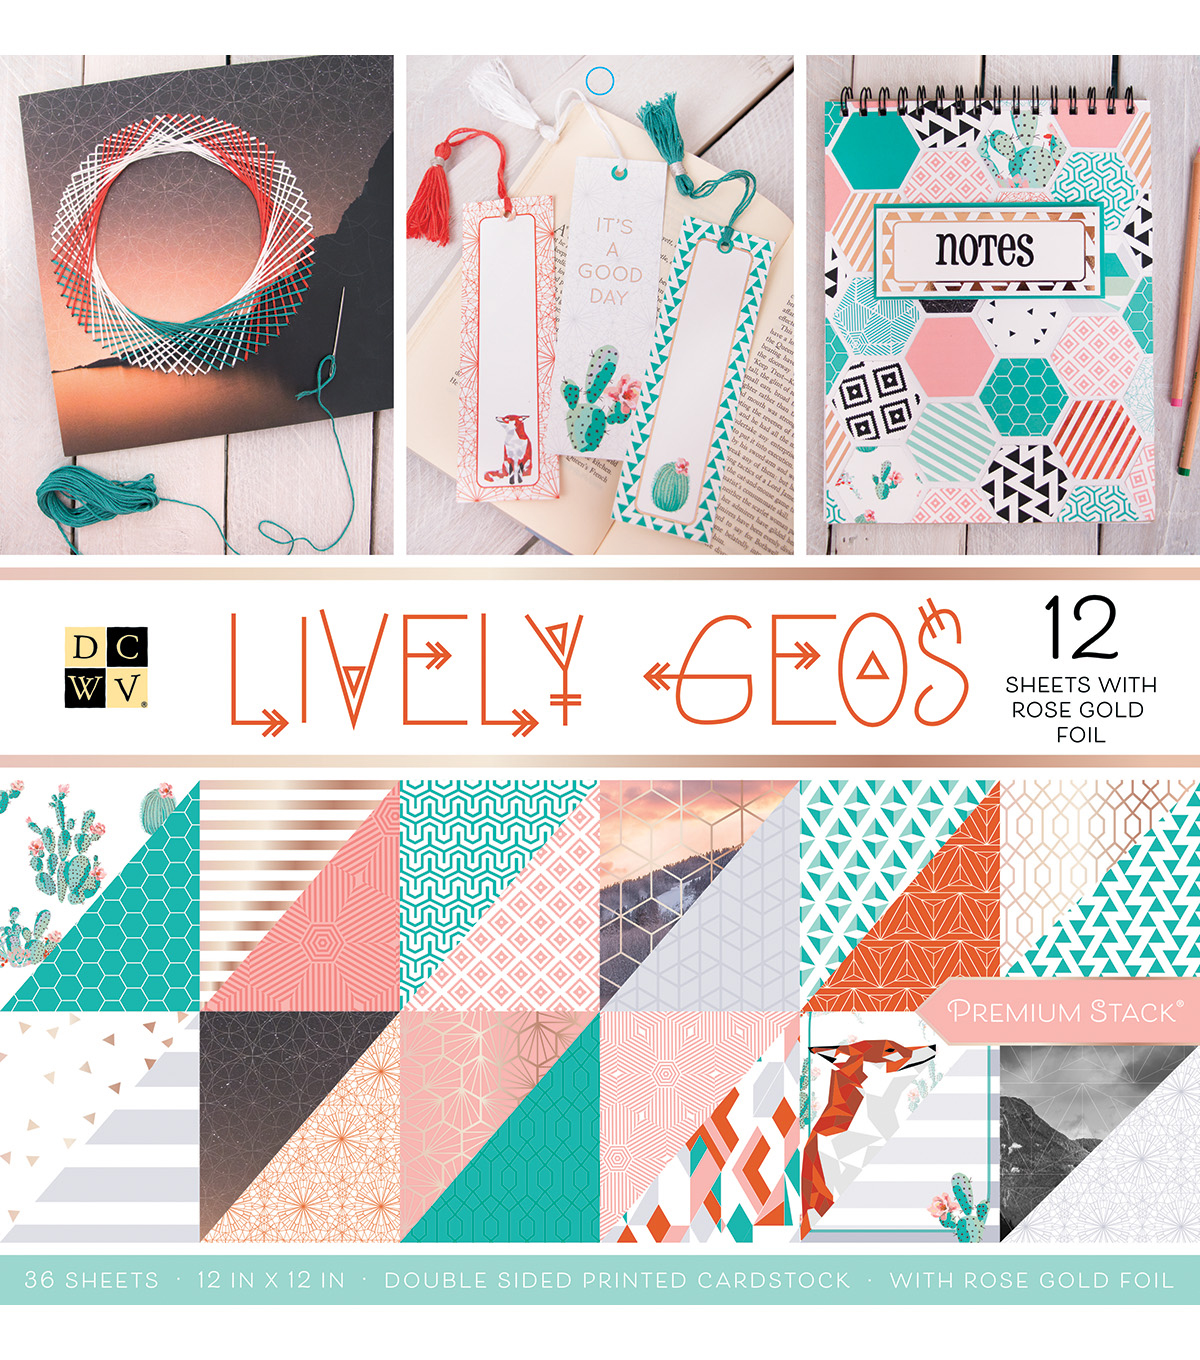 DCWV 36 Pack 12''x12'' Premium Stack Printed Cardstock-Lively Geos